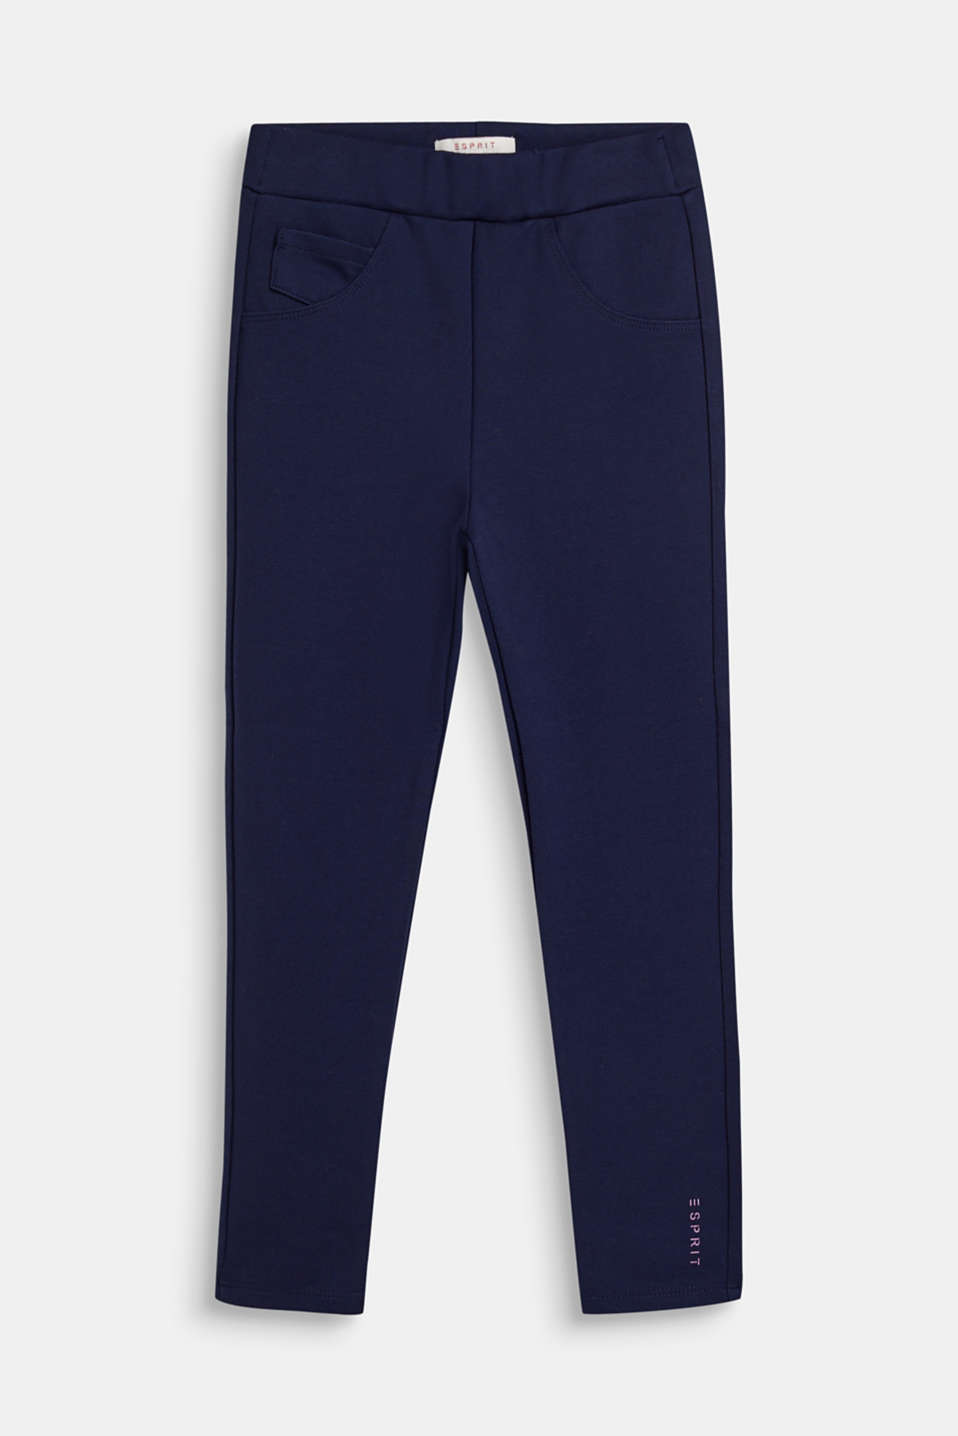 Esprit - Compact stretch jersey trousers